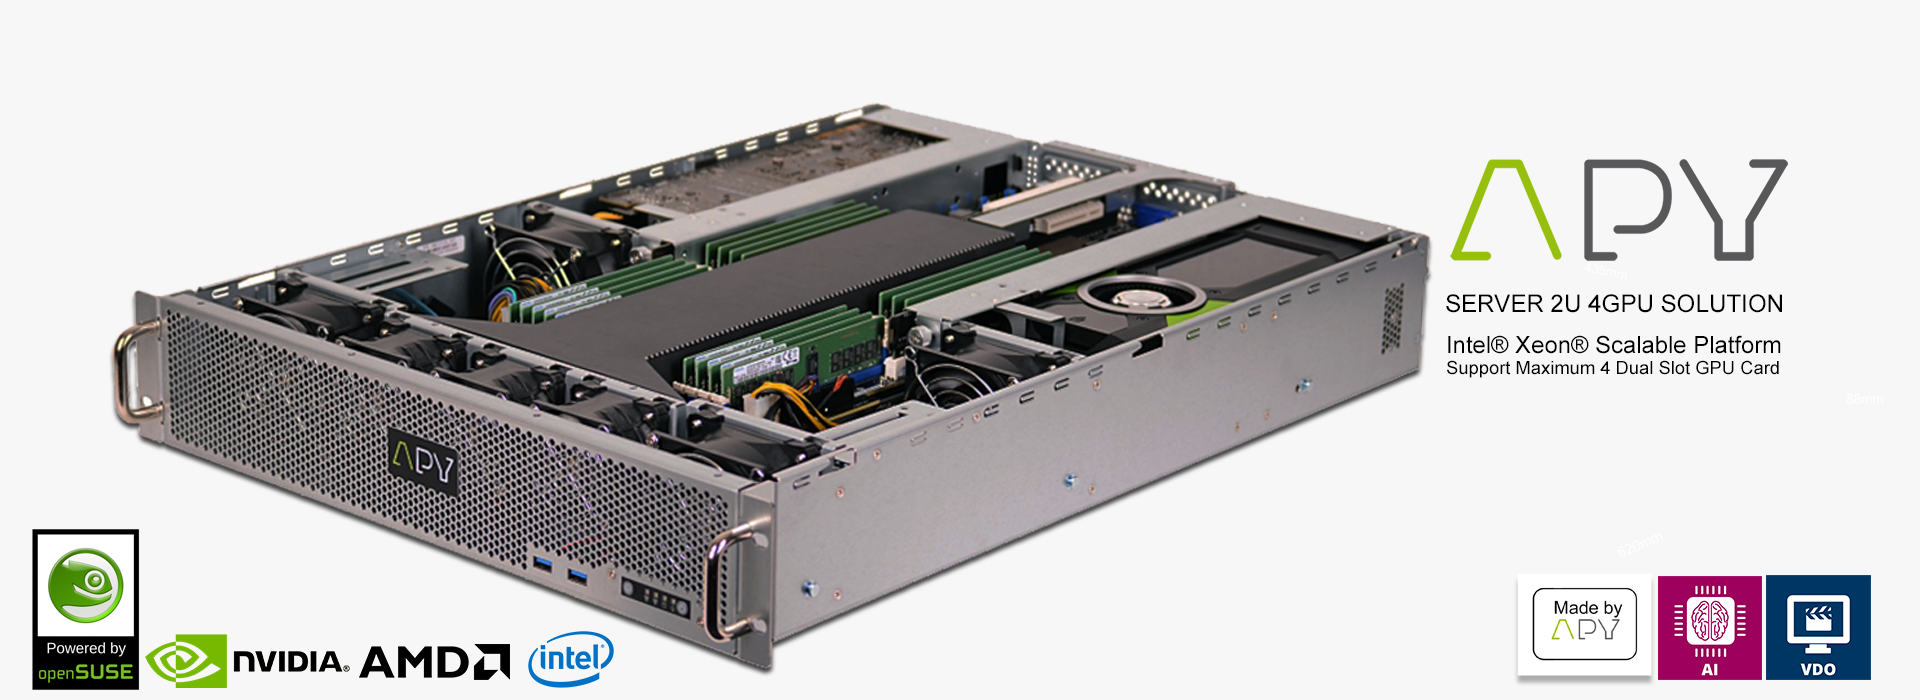 Discover the APY ONE G4 U 4 GPU server made in APY